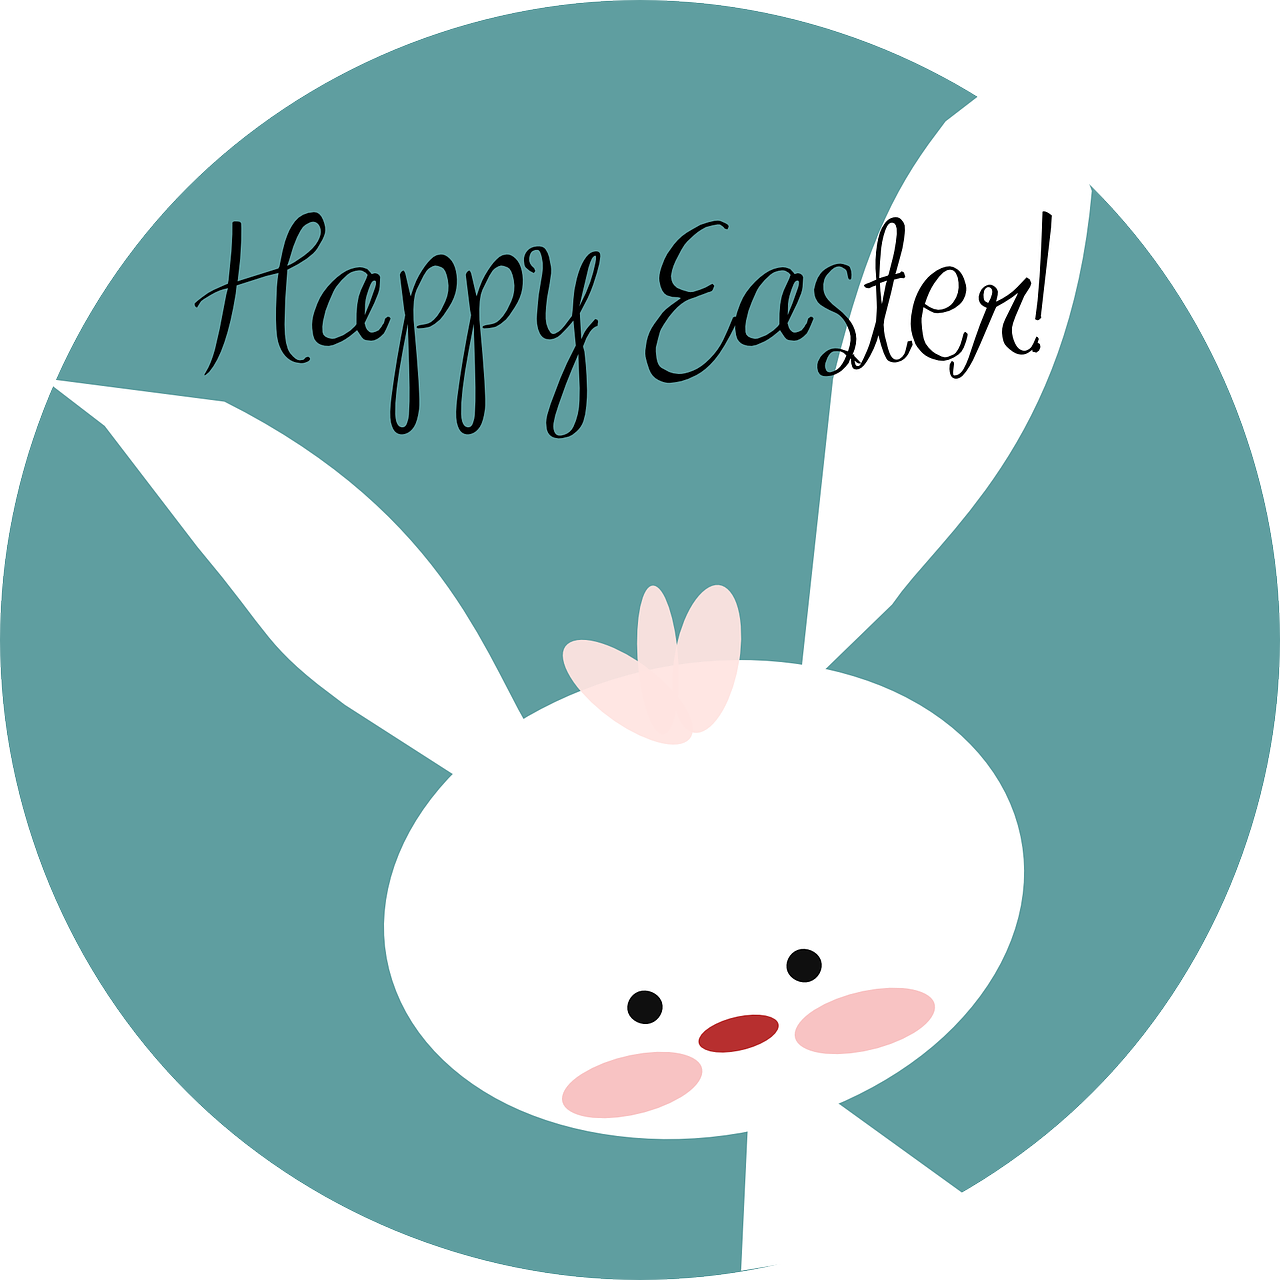 Holiday clipart spring. Vacation happy easter season